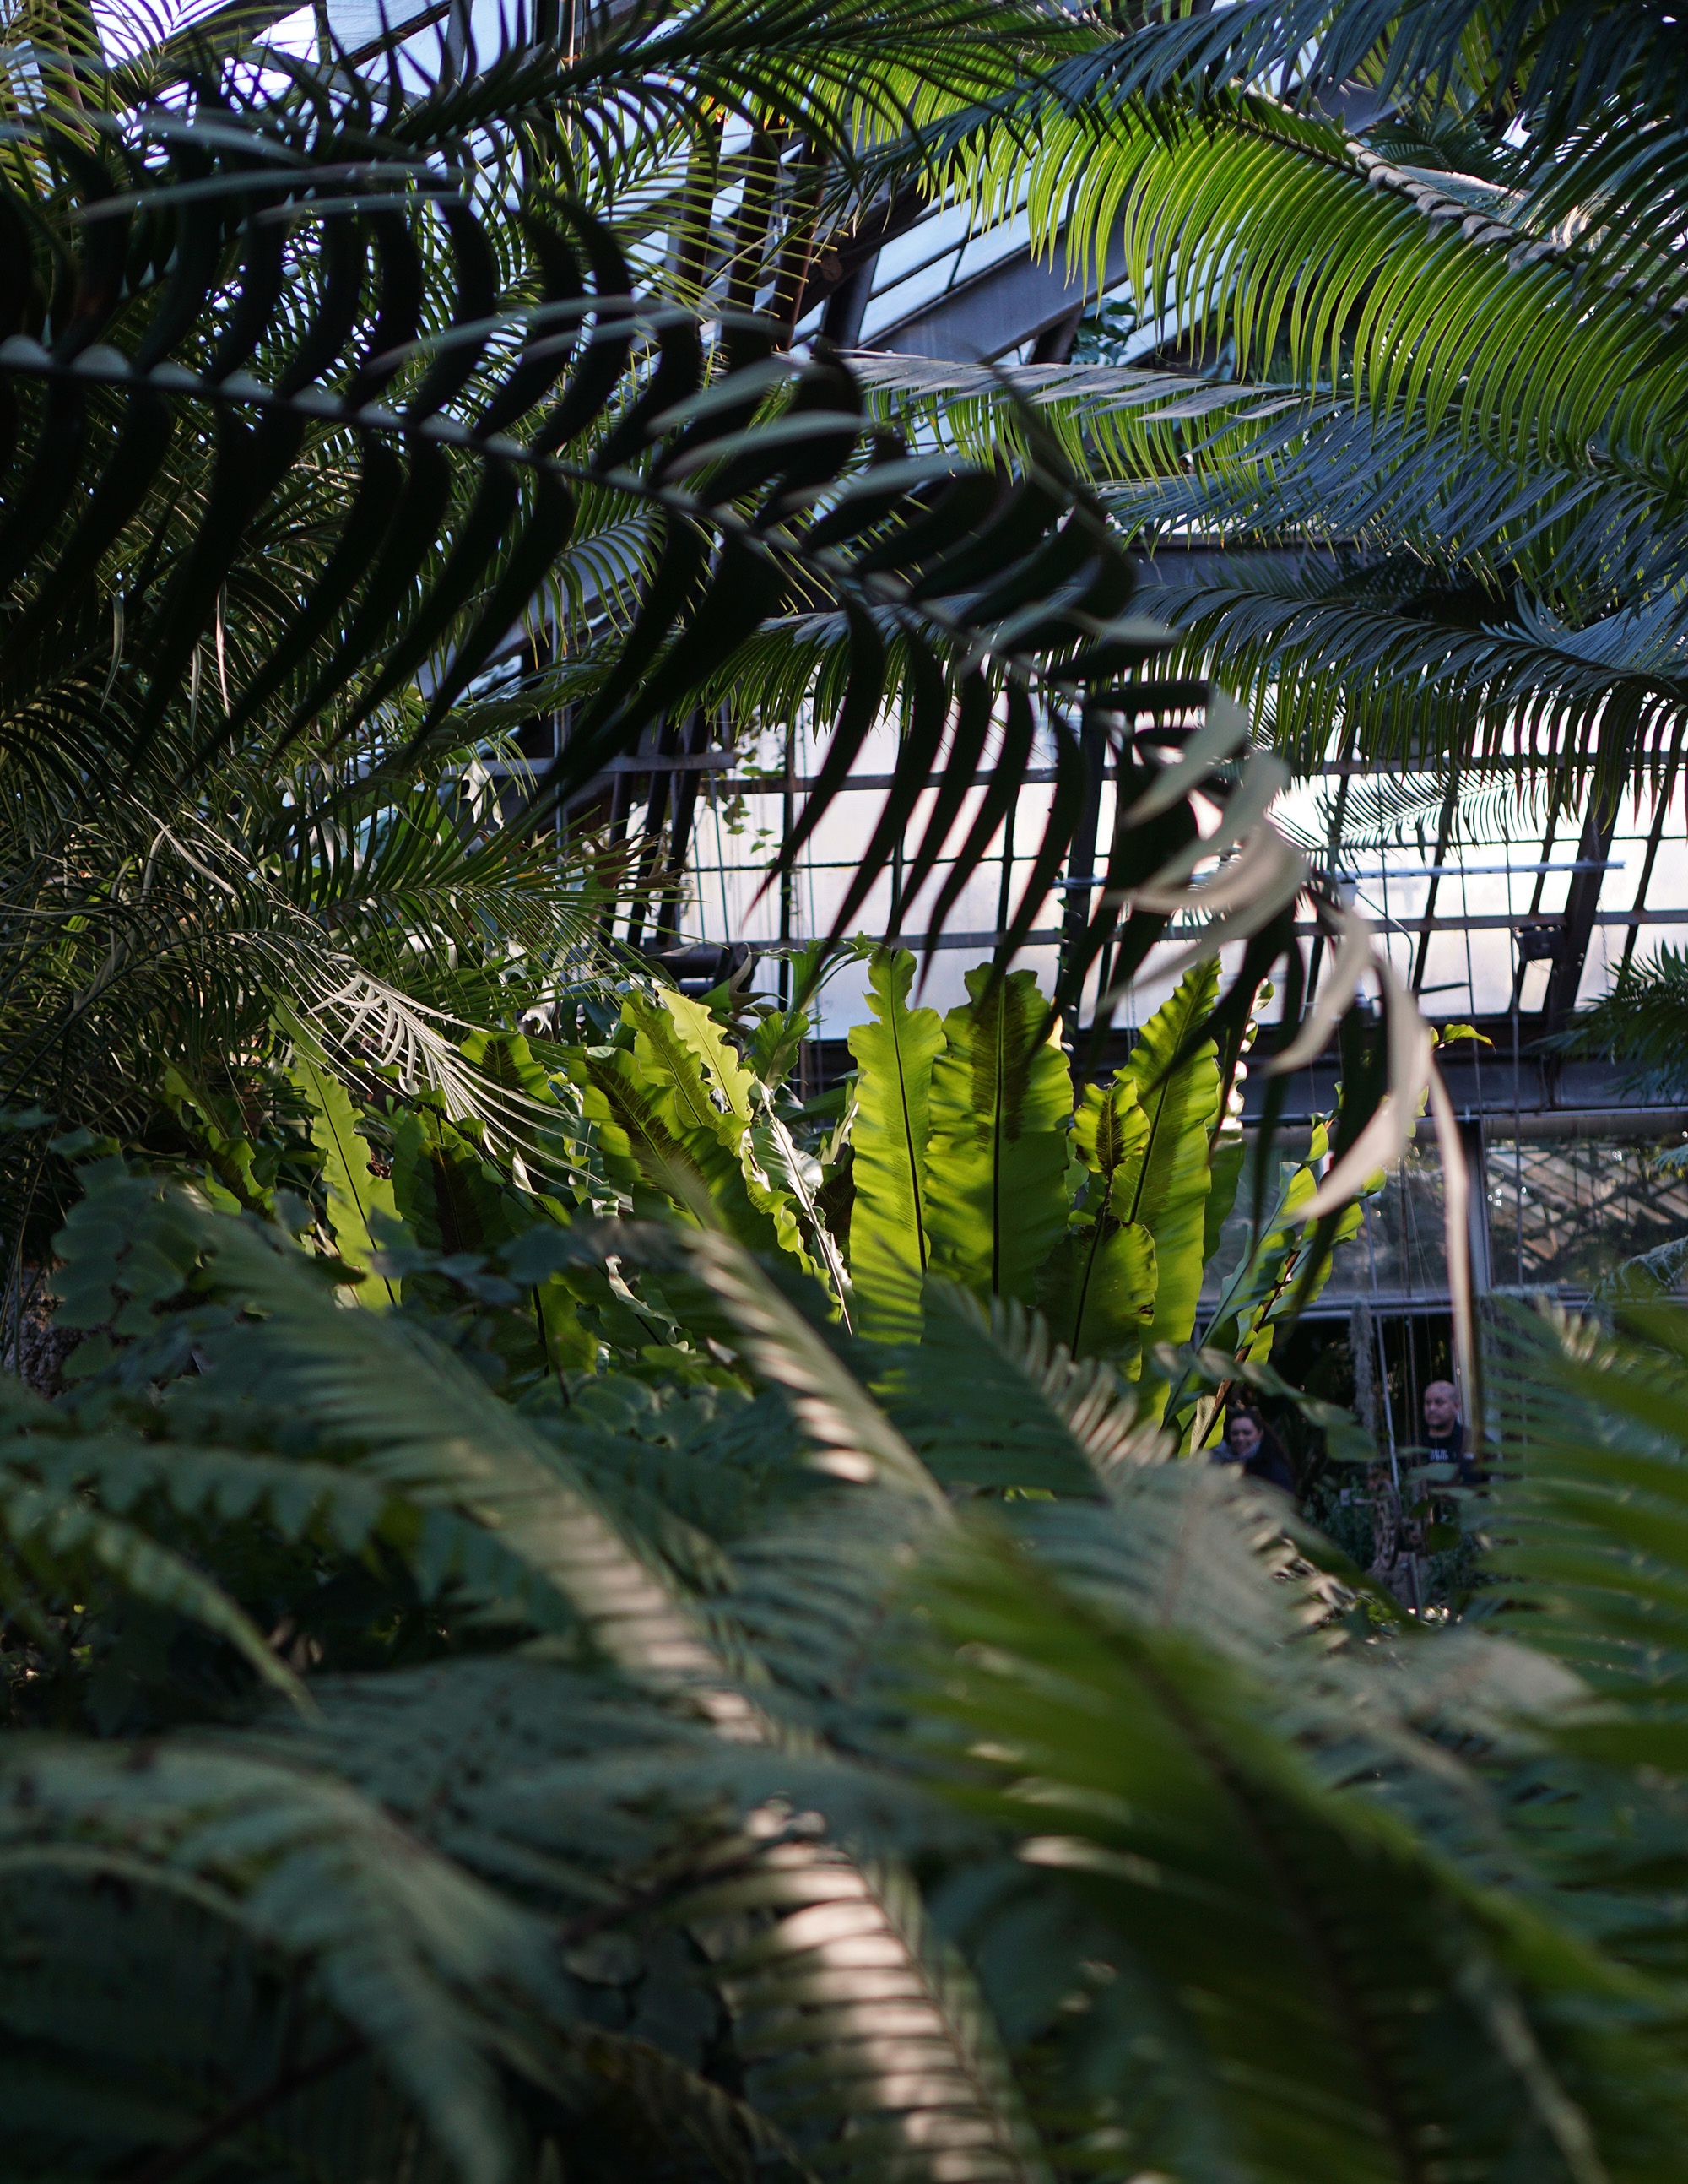 Ferns in the Lincoln Park Conservatory, Chicago / Darker than Green